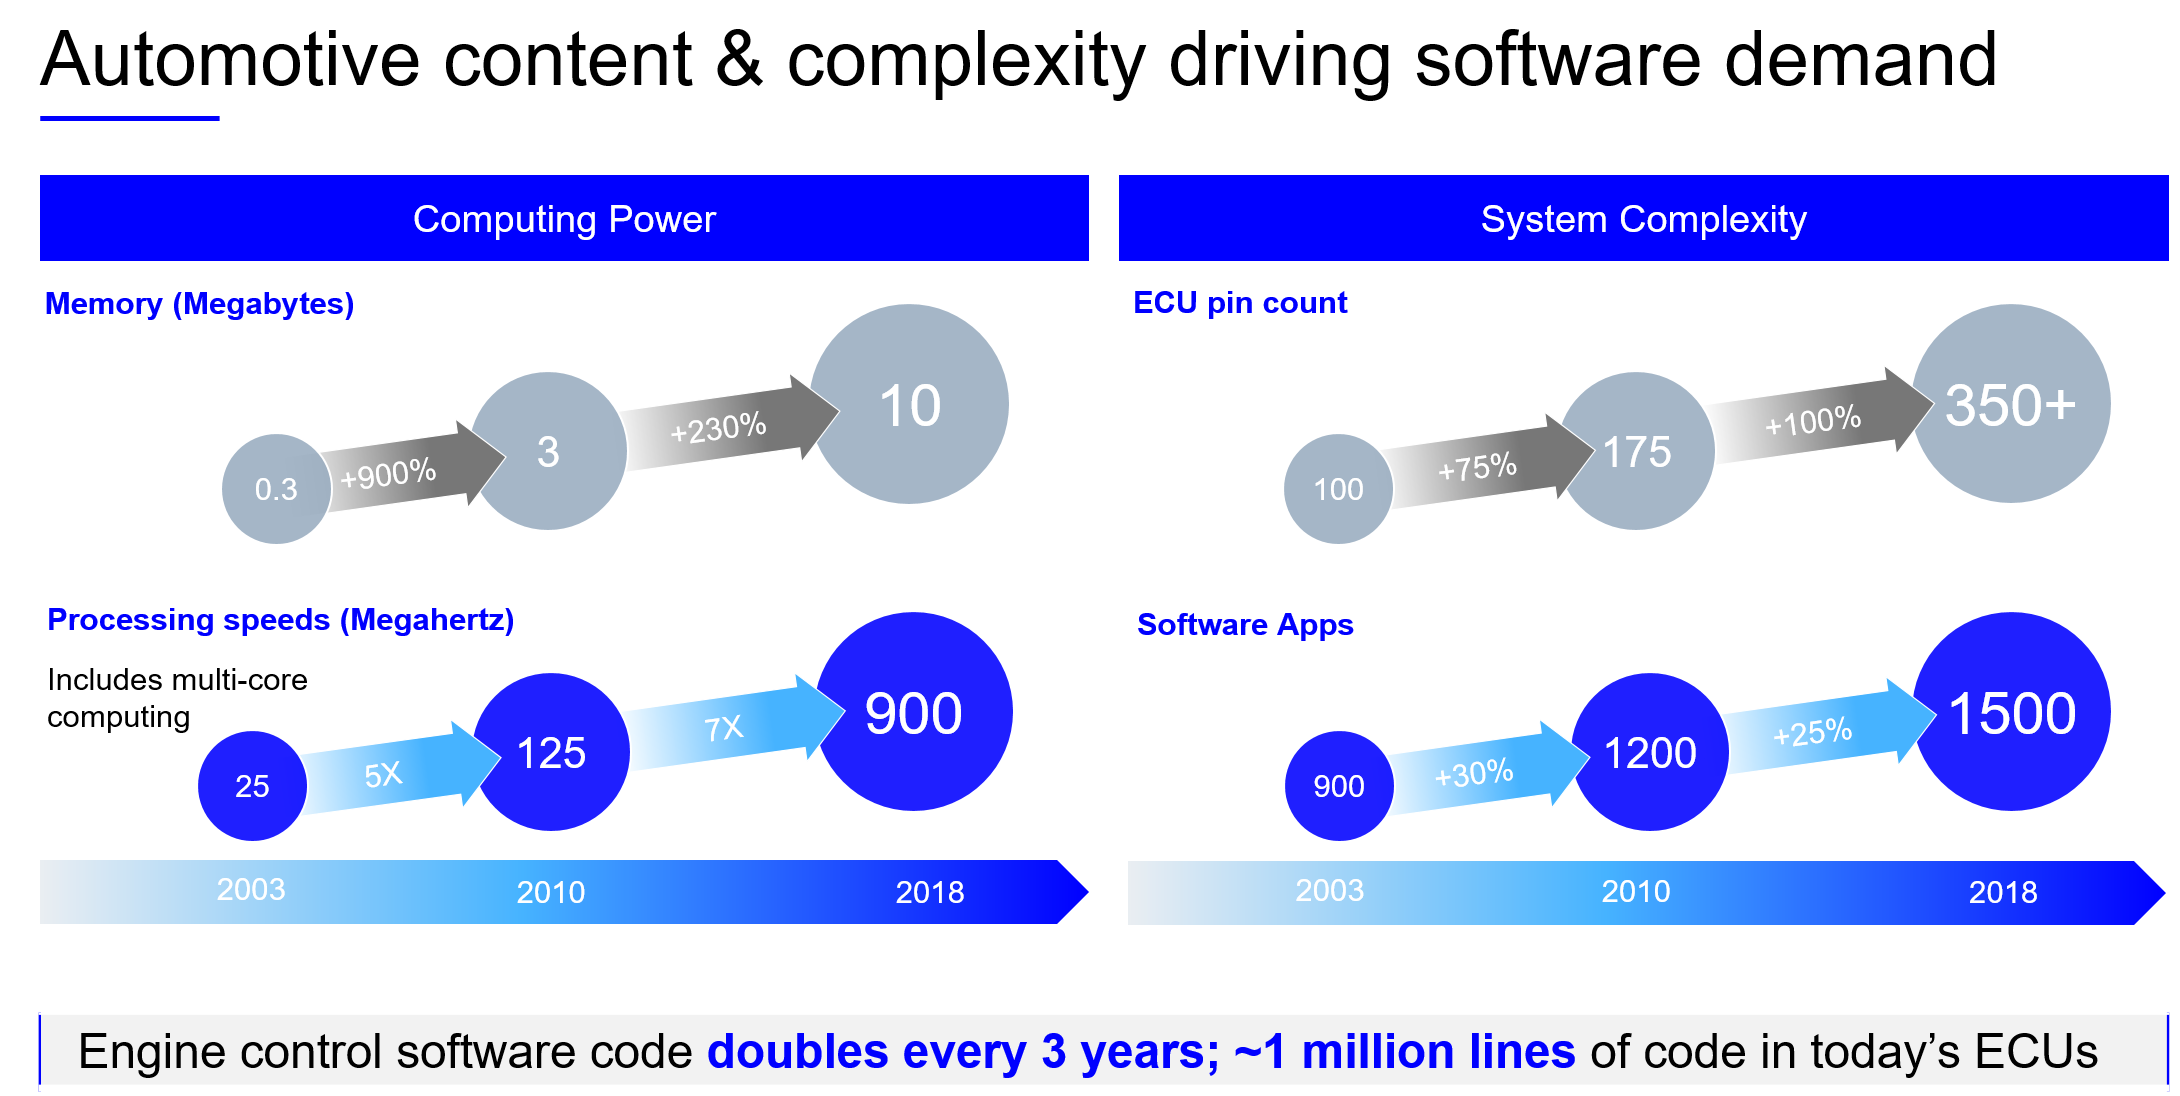 a bubble graphic showing the growth of vehicle computer power, processing speeds, ECU pins and software apps from 2003 to 2018